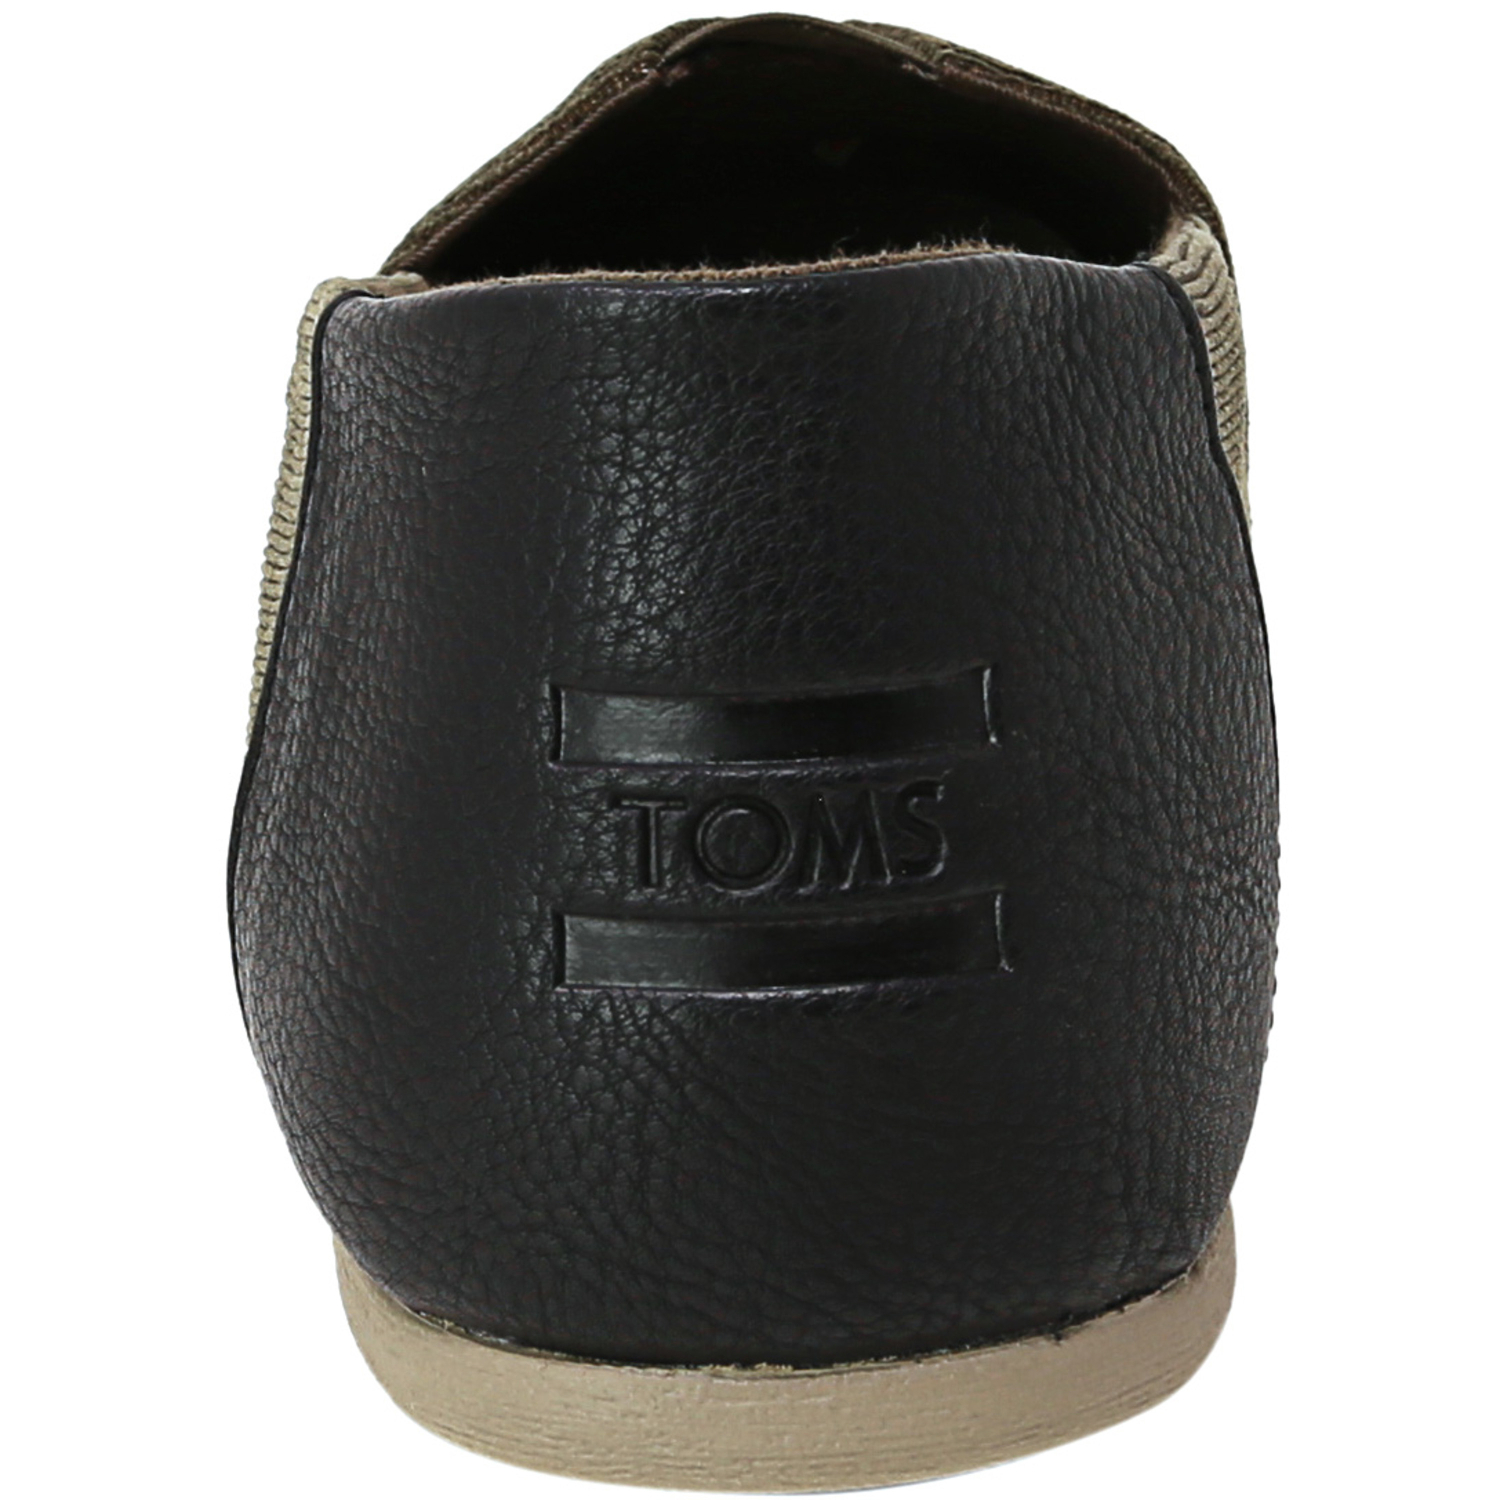 Toms-Men-039-s-Classic-Corduroy-Ankle-High-Fabric-Slip-On-Shoes thumbnail 6